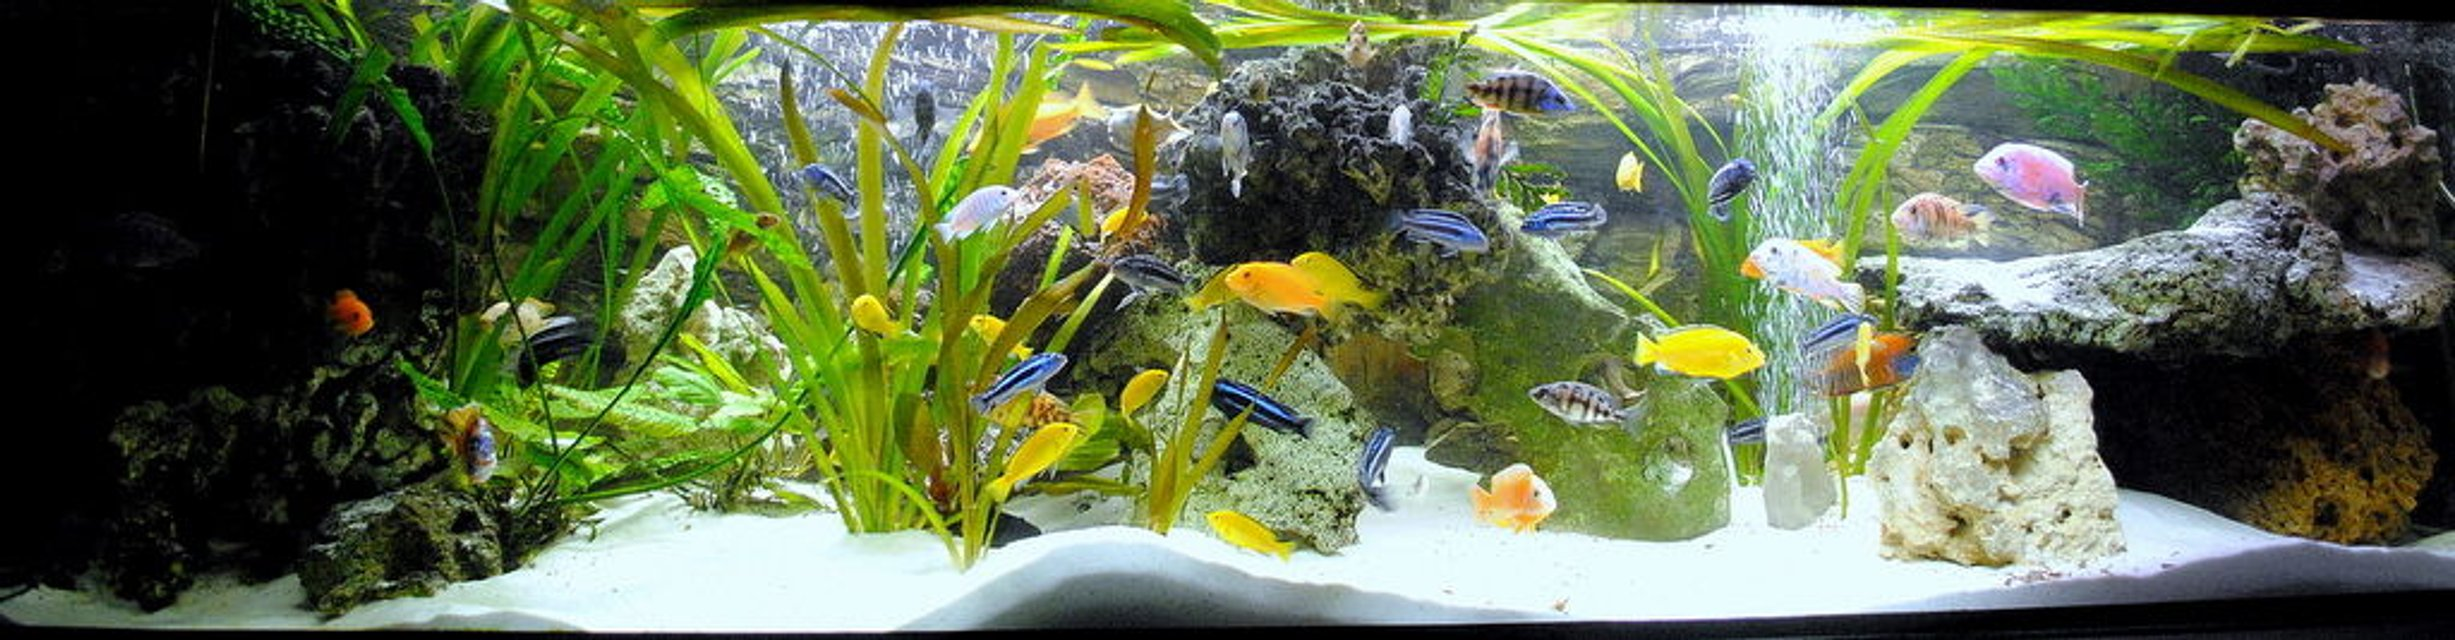 Rated #3: 132 Gallons Freshwater Fish Tank - My best TV chanell